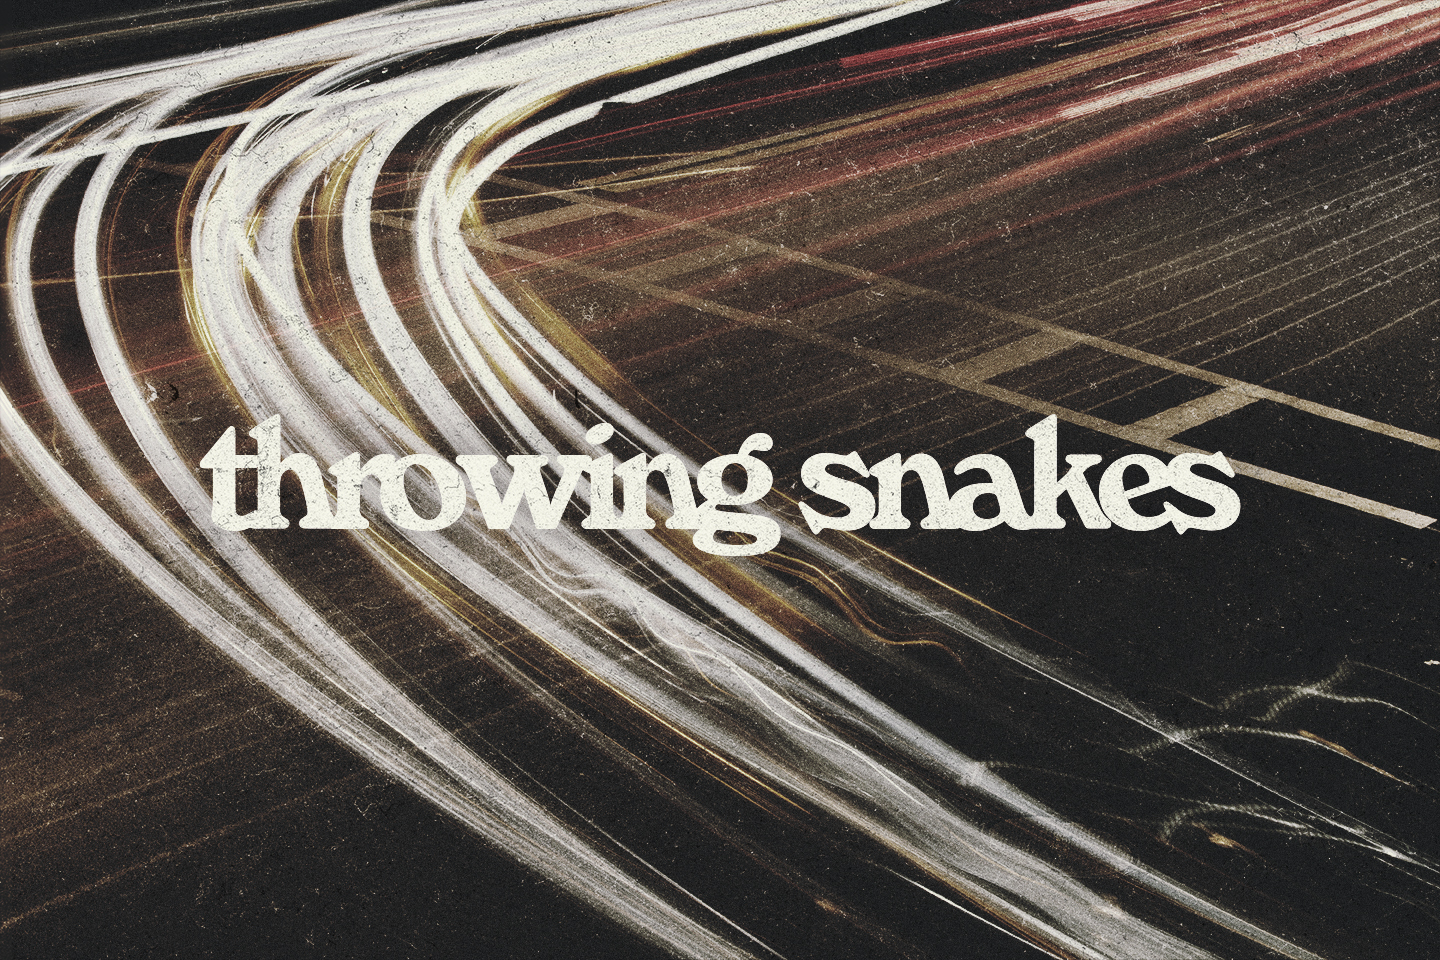 throwing snakes graphic.jpg